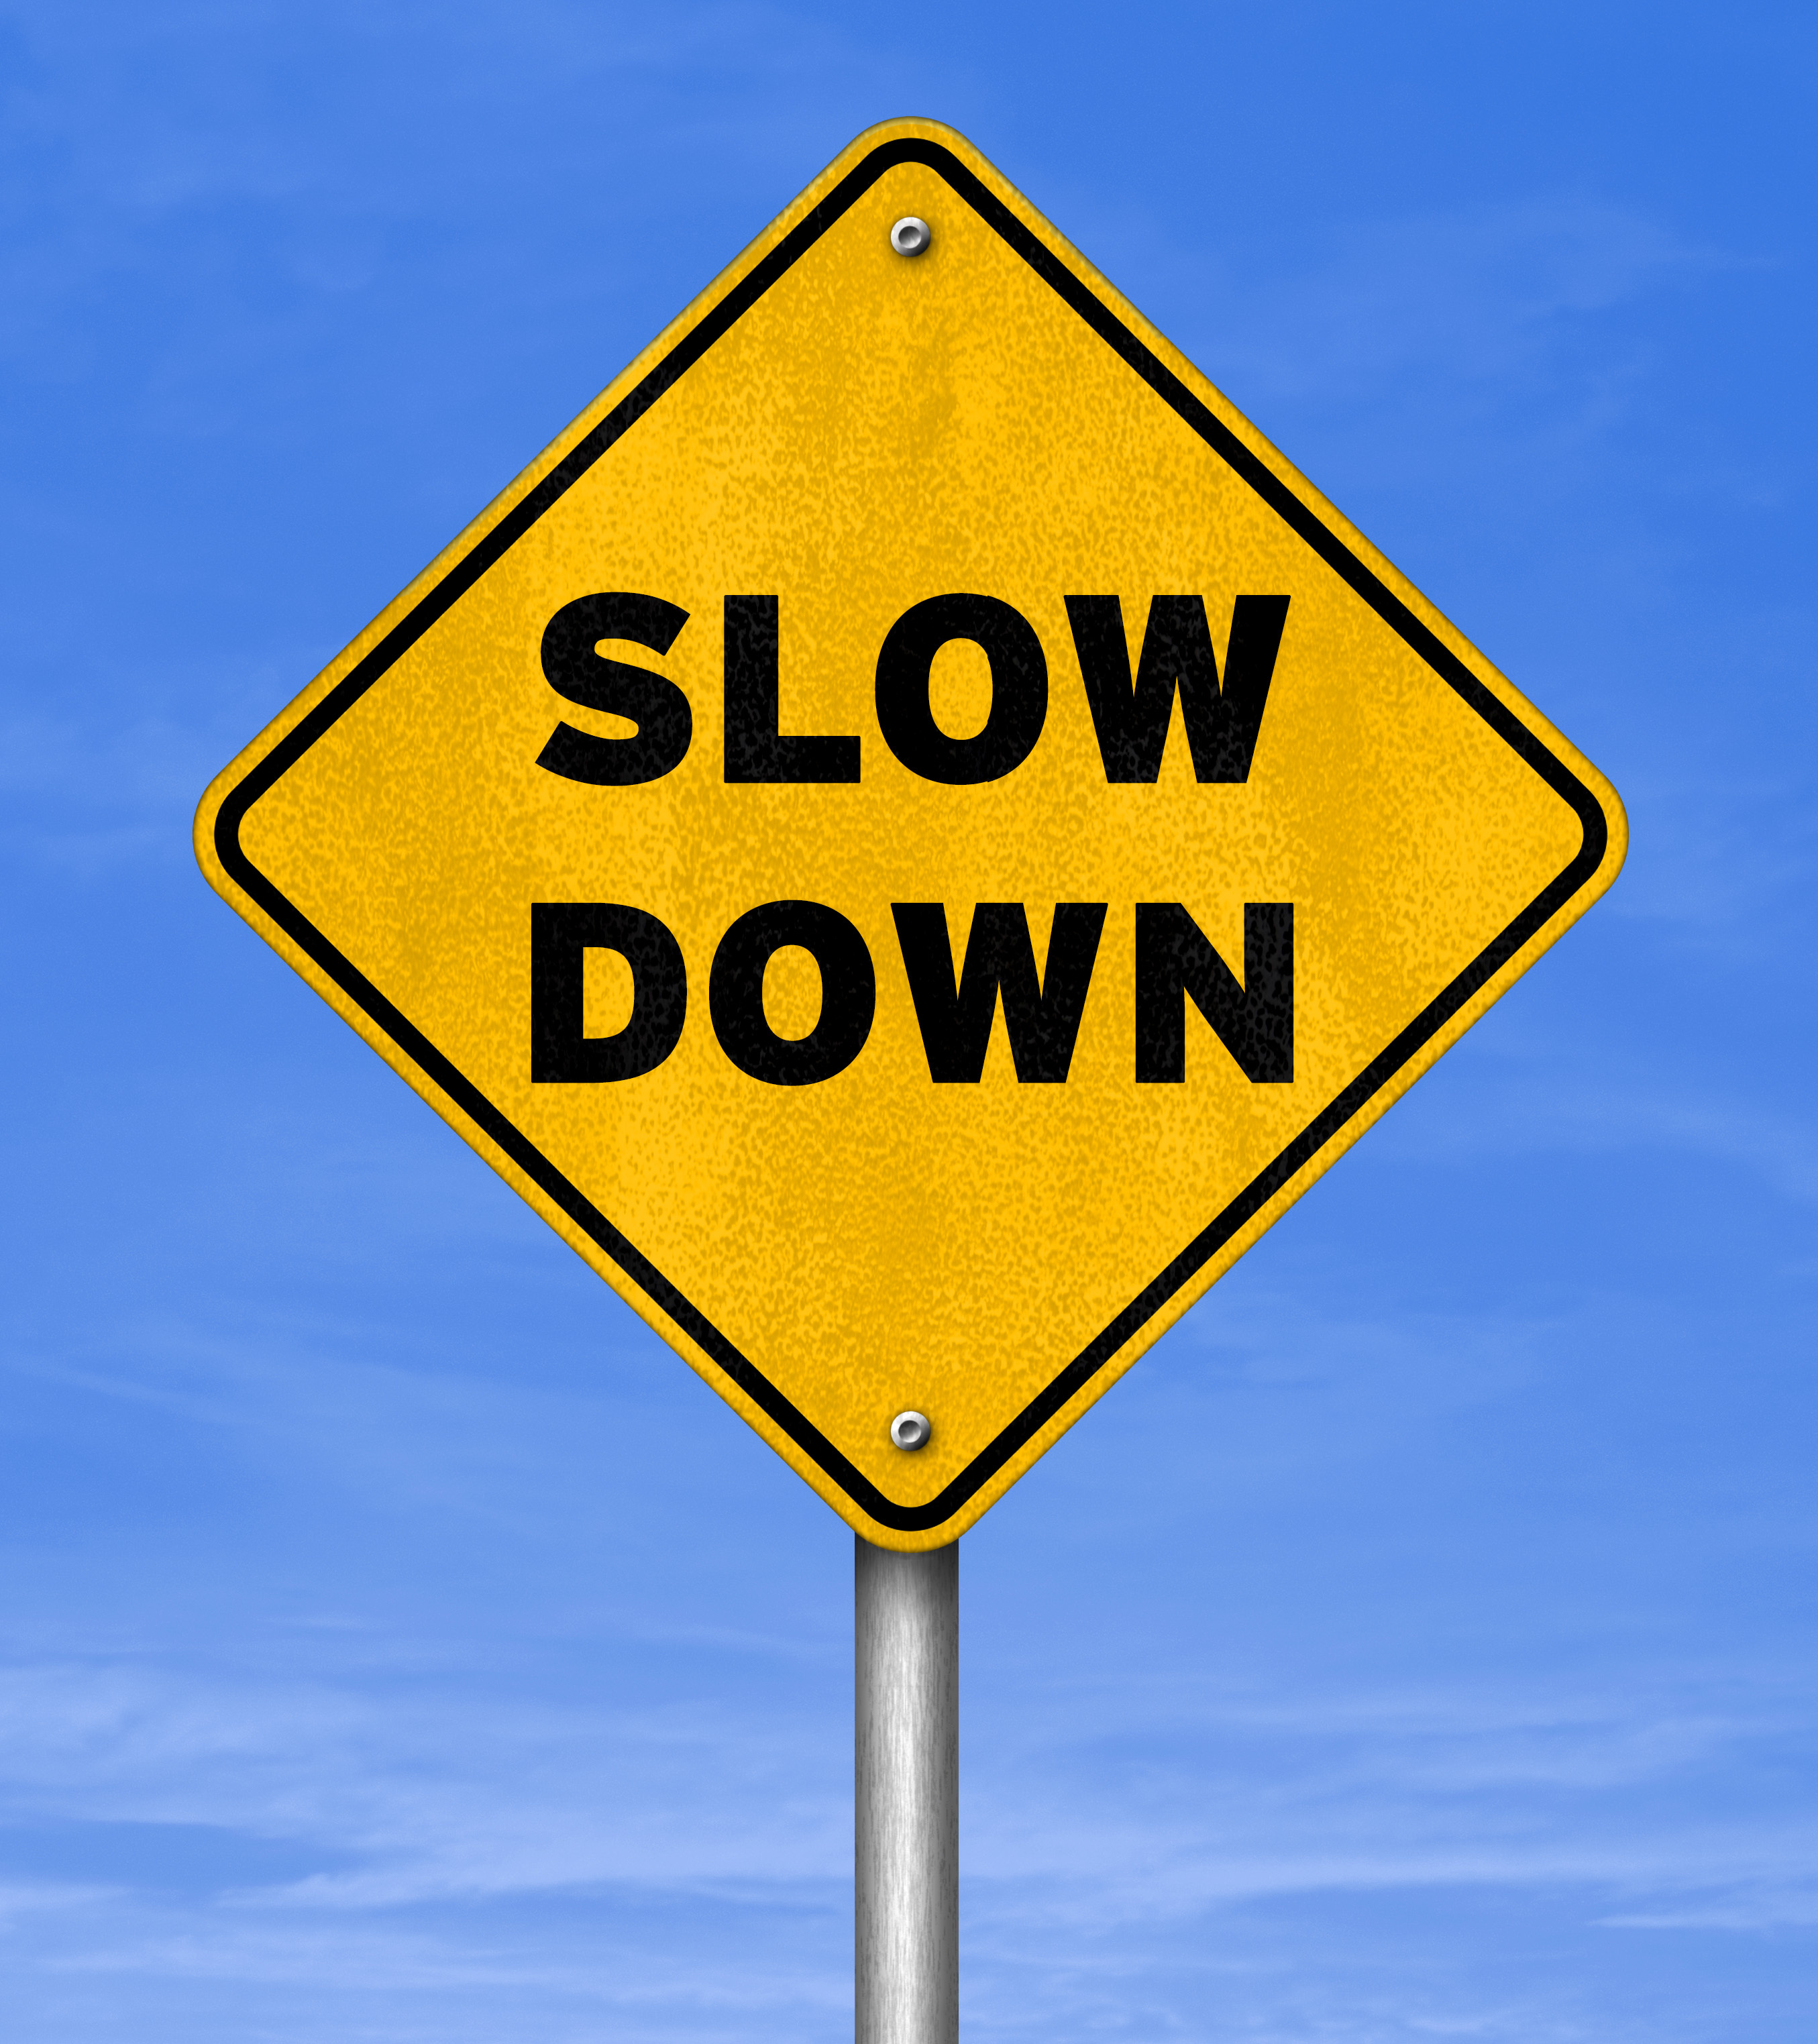 Ask The Mayor: Can I Get a Slow Down Sign on My Street?